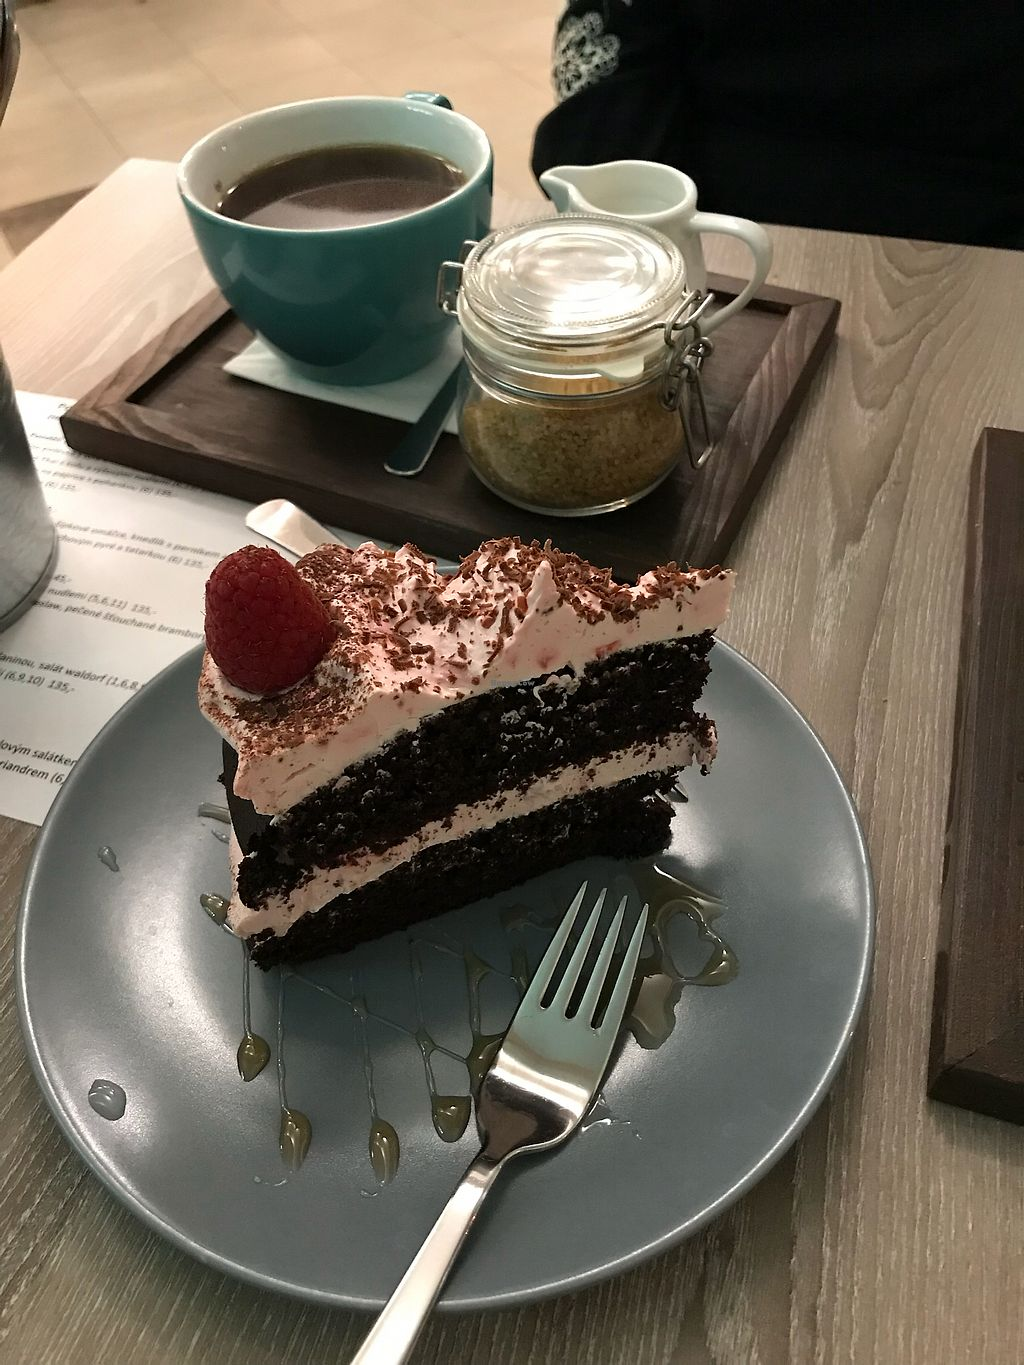 """Photo of Forrest Bistro  by <a href=""""/members/profile/AlexDowney"""">AlexDowney</a> <br/>Chocolate raspberry cake  <br/> March 12, 2018  - <a href='/contact/abuse/image/102335/369928'>Report</a>"""